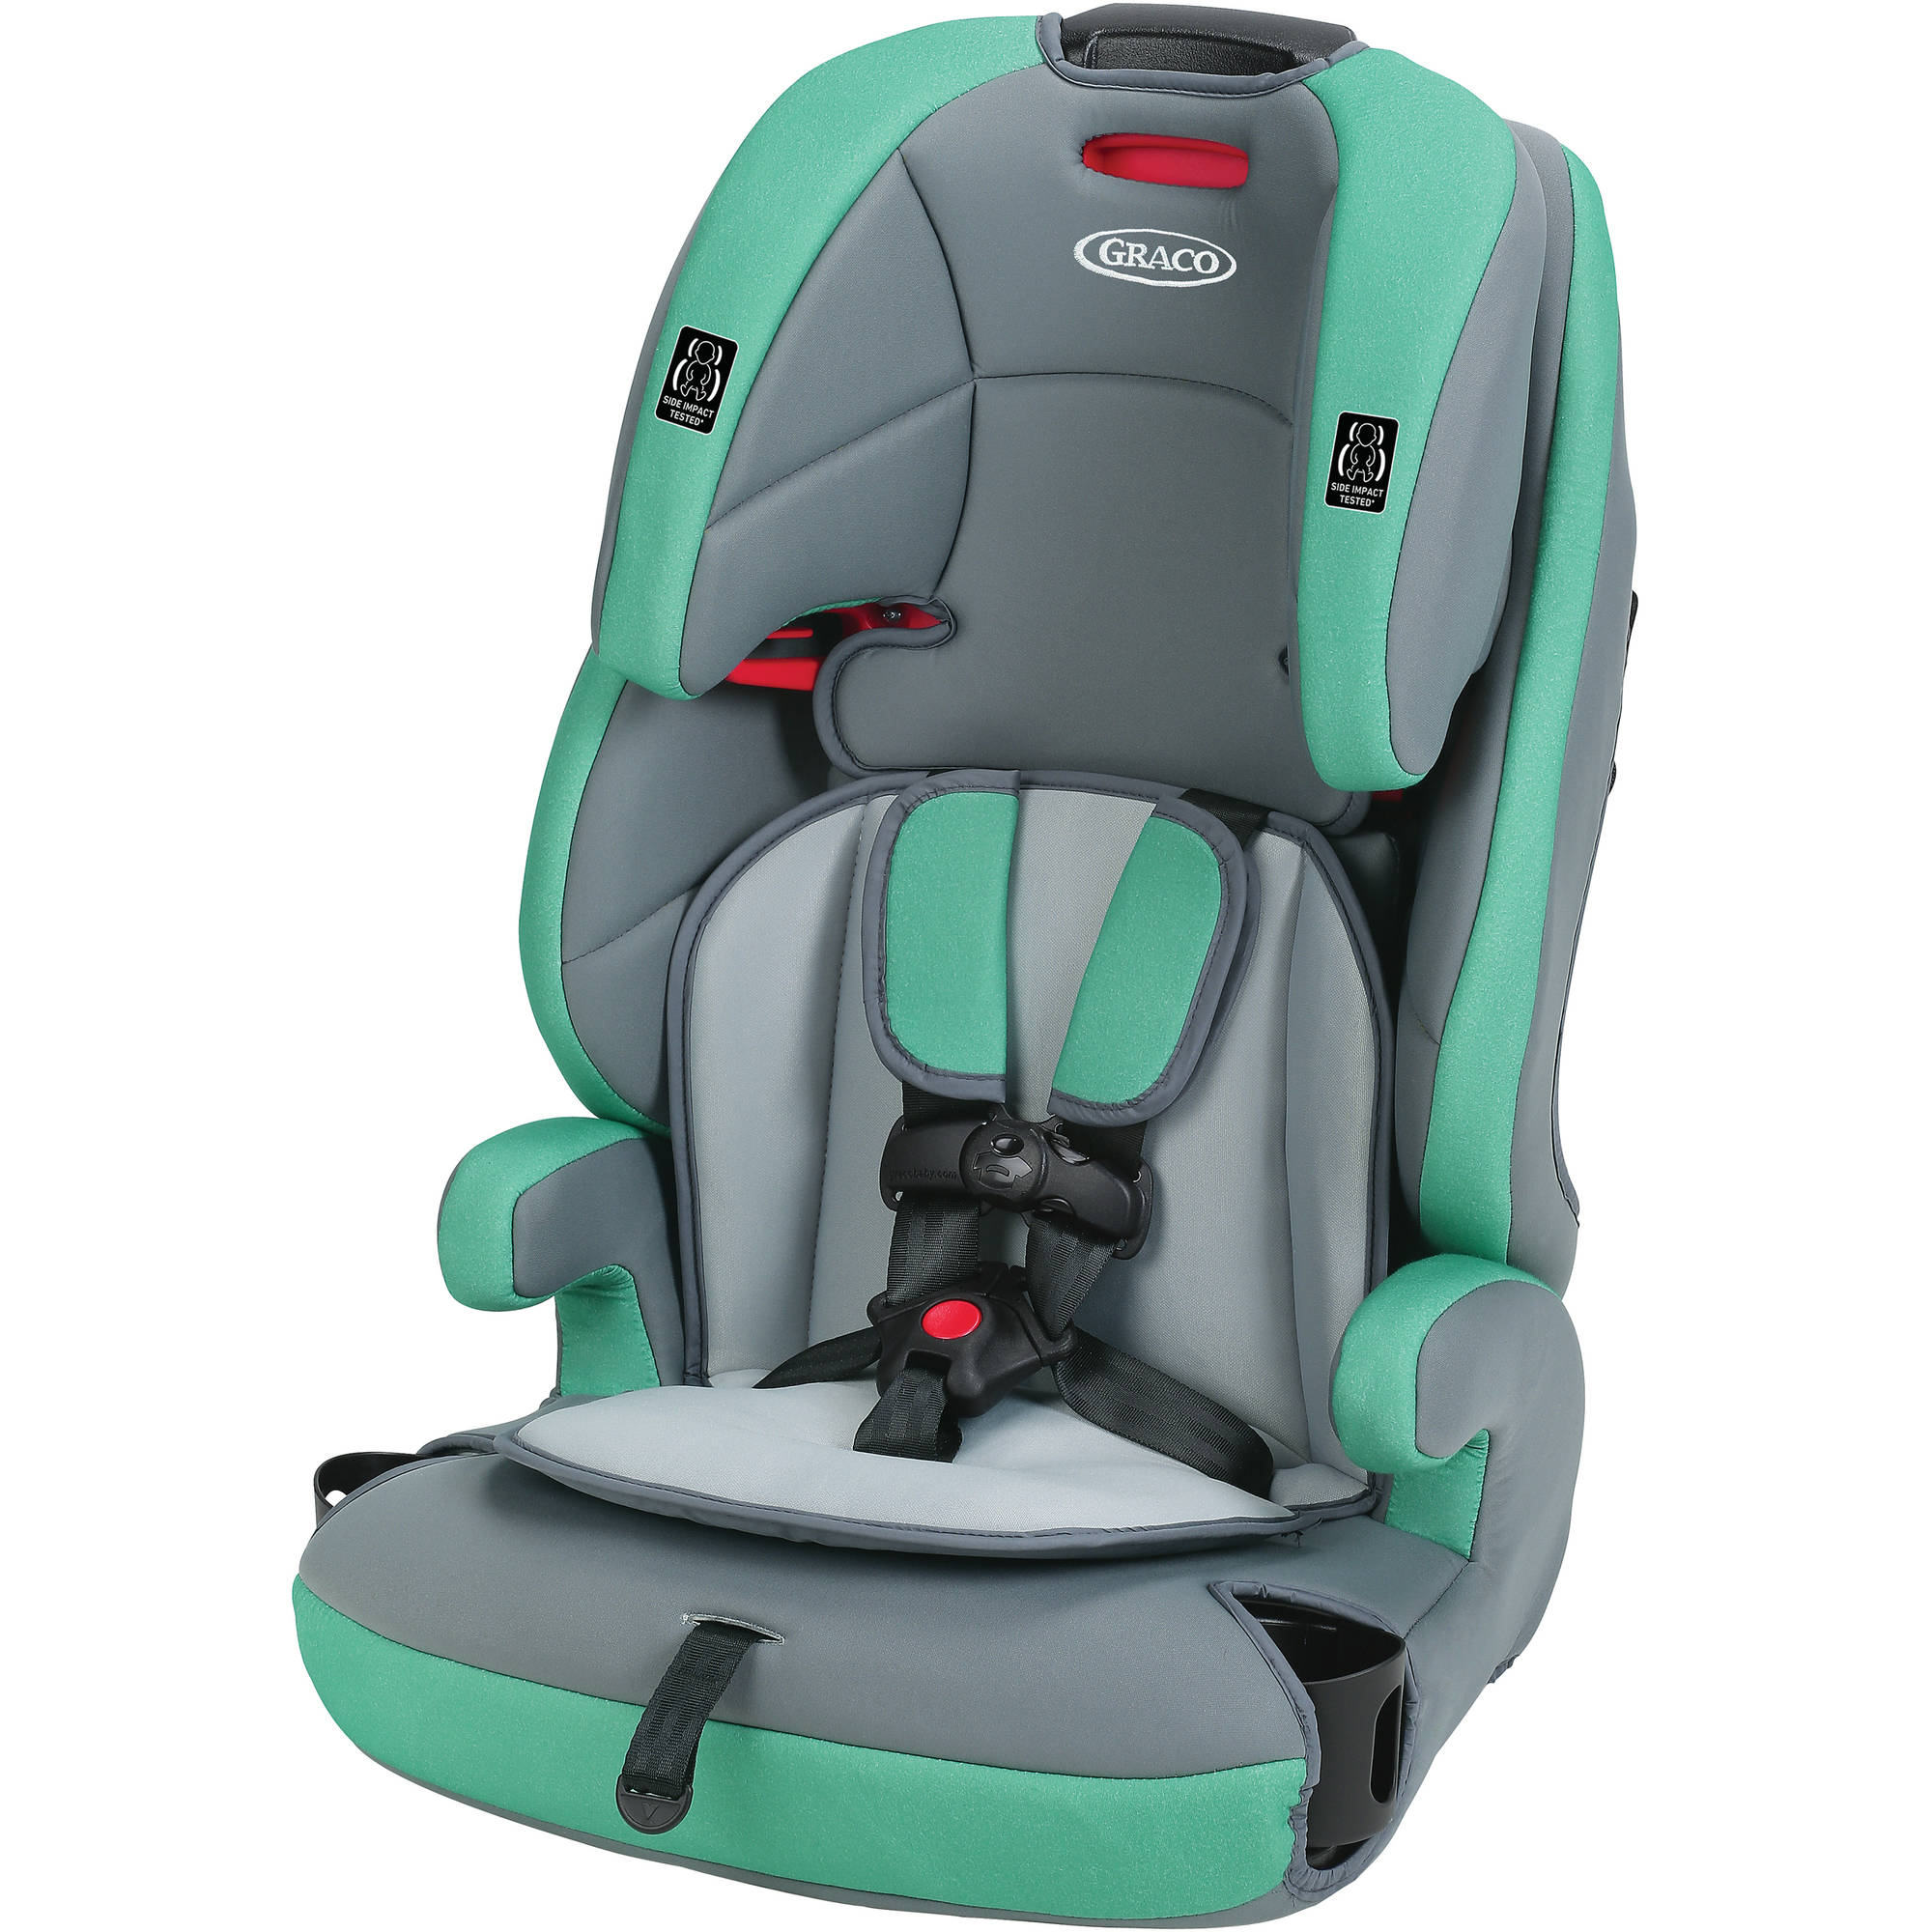 Graco Tranzitions 3-in-1 Harness Booster Seat, Basin by Graco